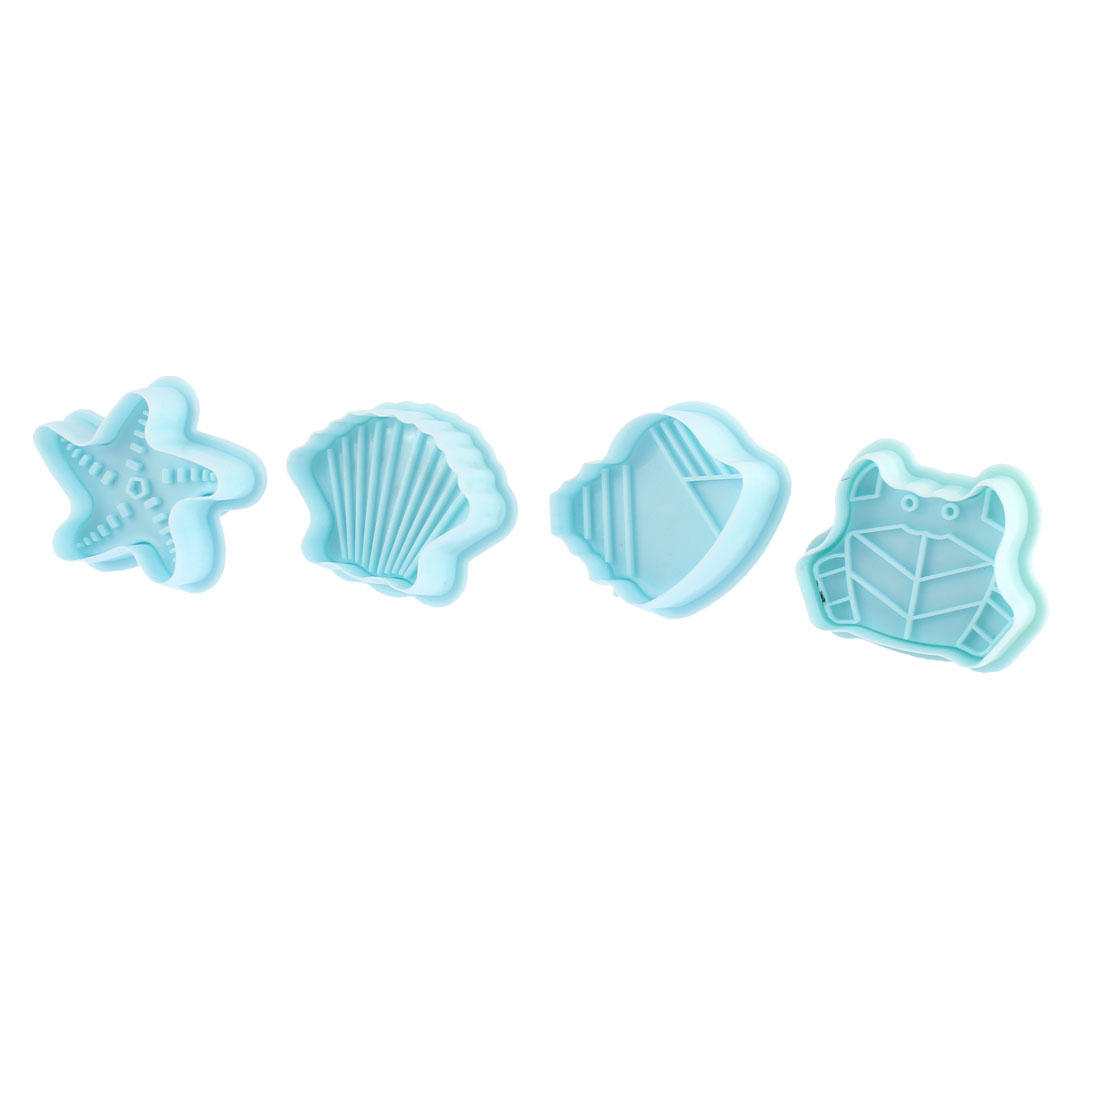 Fondant Cake Decorating Mold Mould Sugarcraft Plunger Cutter Tools 4 Pcs